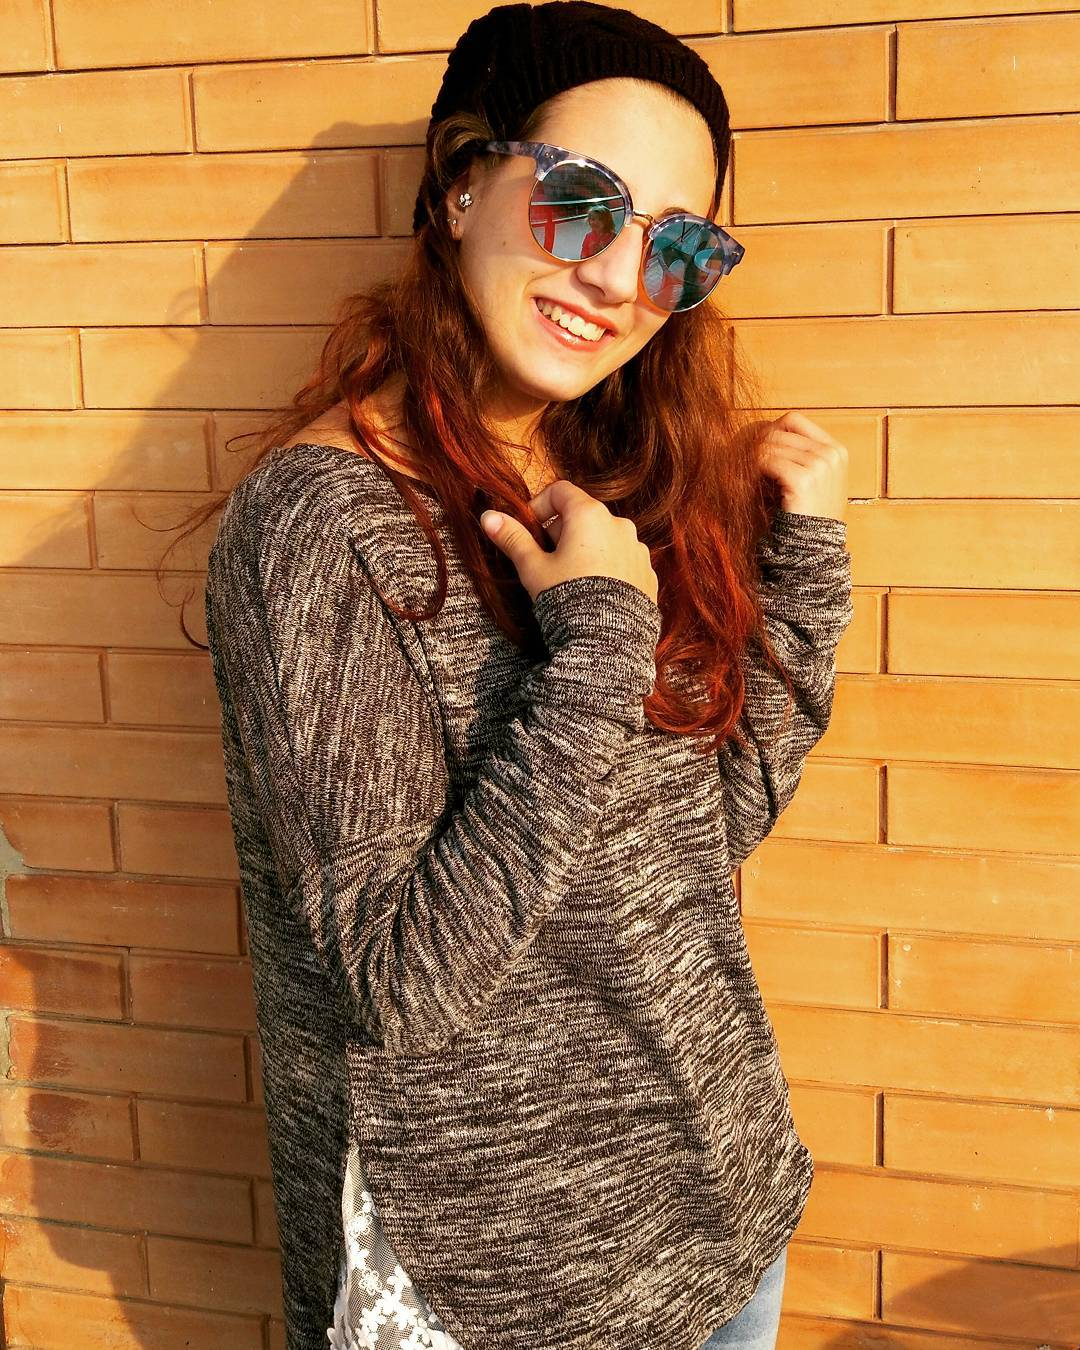 Il sole d'inverno illumina il sorriso e scalda il cuore #outfitoftheday #outfit #sweater #dresslily #sunglasses #jpagetta #piercing #crazyfactory #fashionaddict #fashionblogger #style #fashiongram #urbanoutfit #urbanoutfitters #trendy #casual #atrendyexperience #b4shopping #instablogger #instafashionista #moda #model #vogue #glamour #instaoutfit